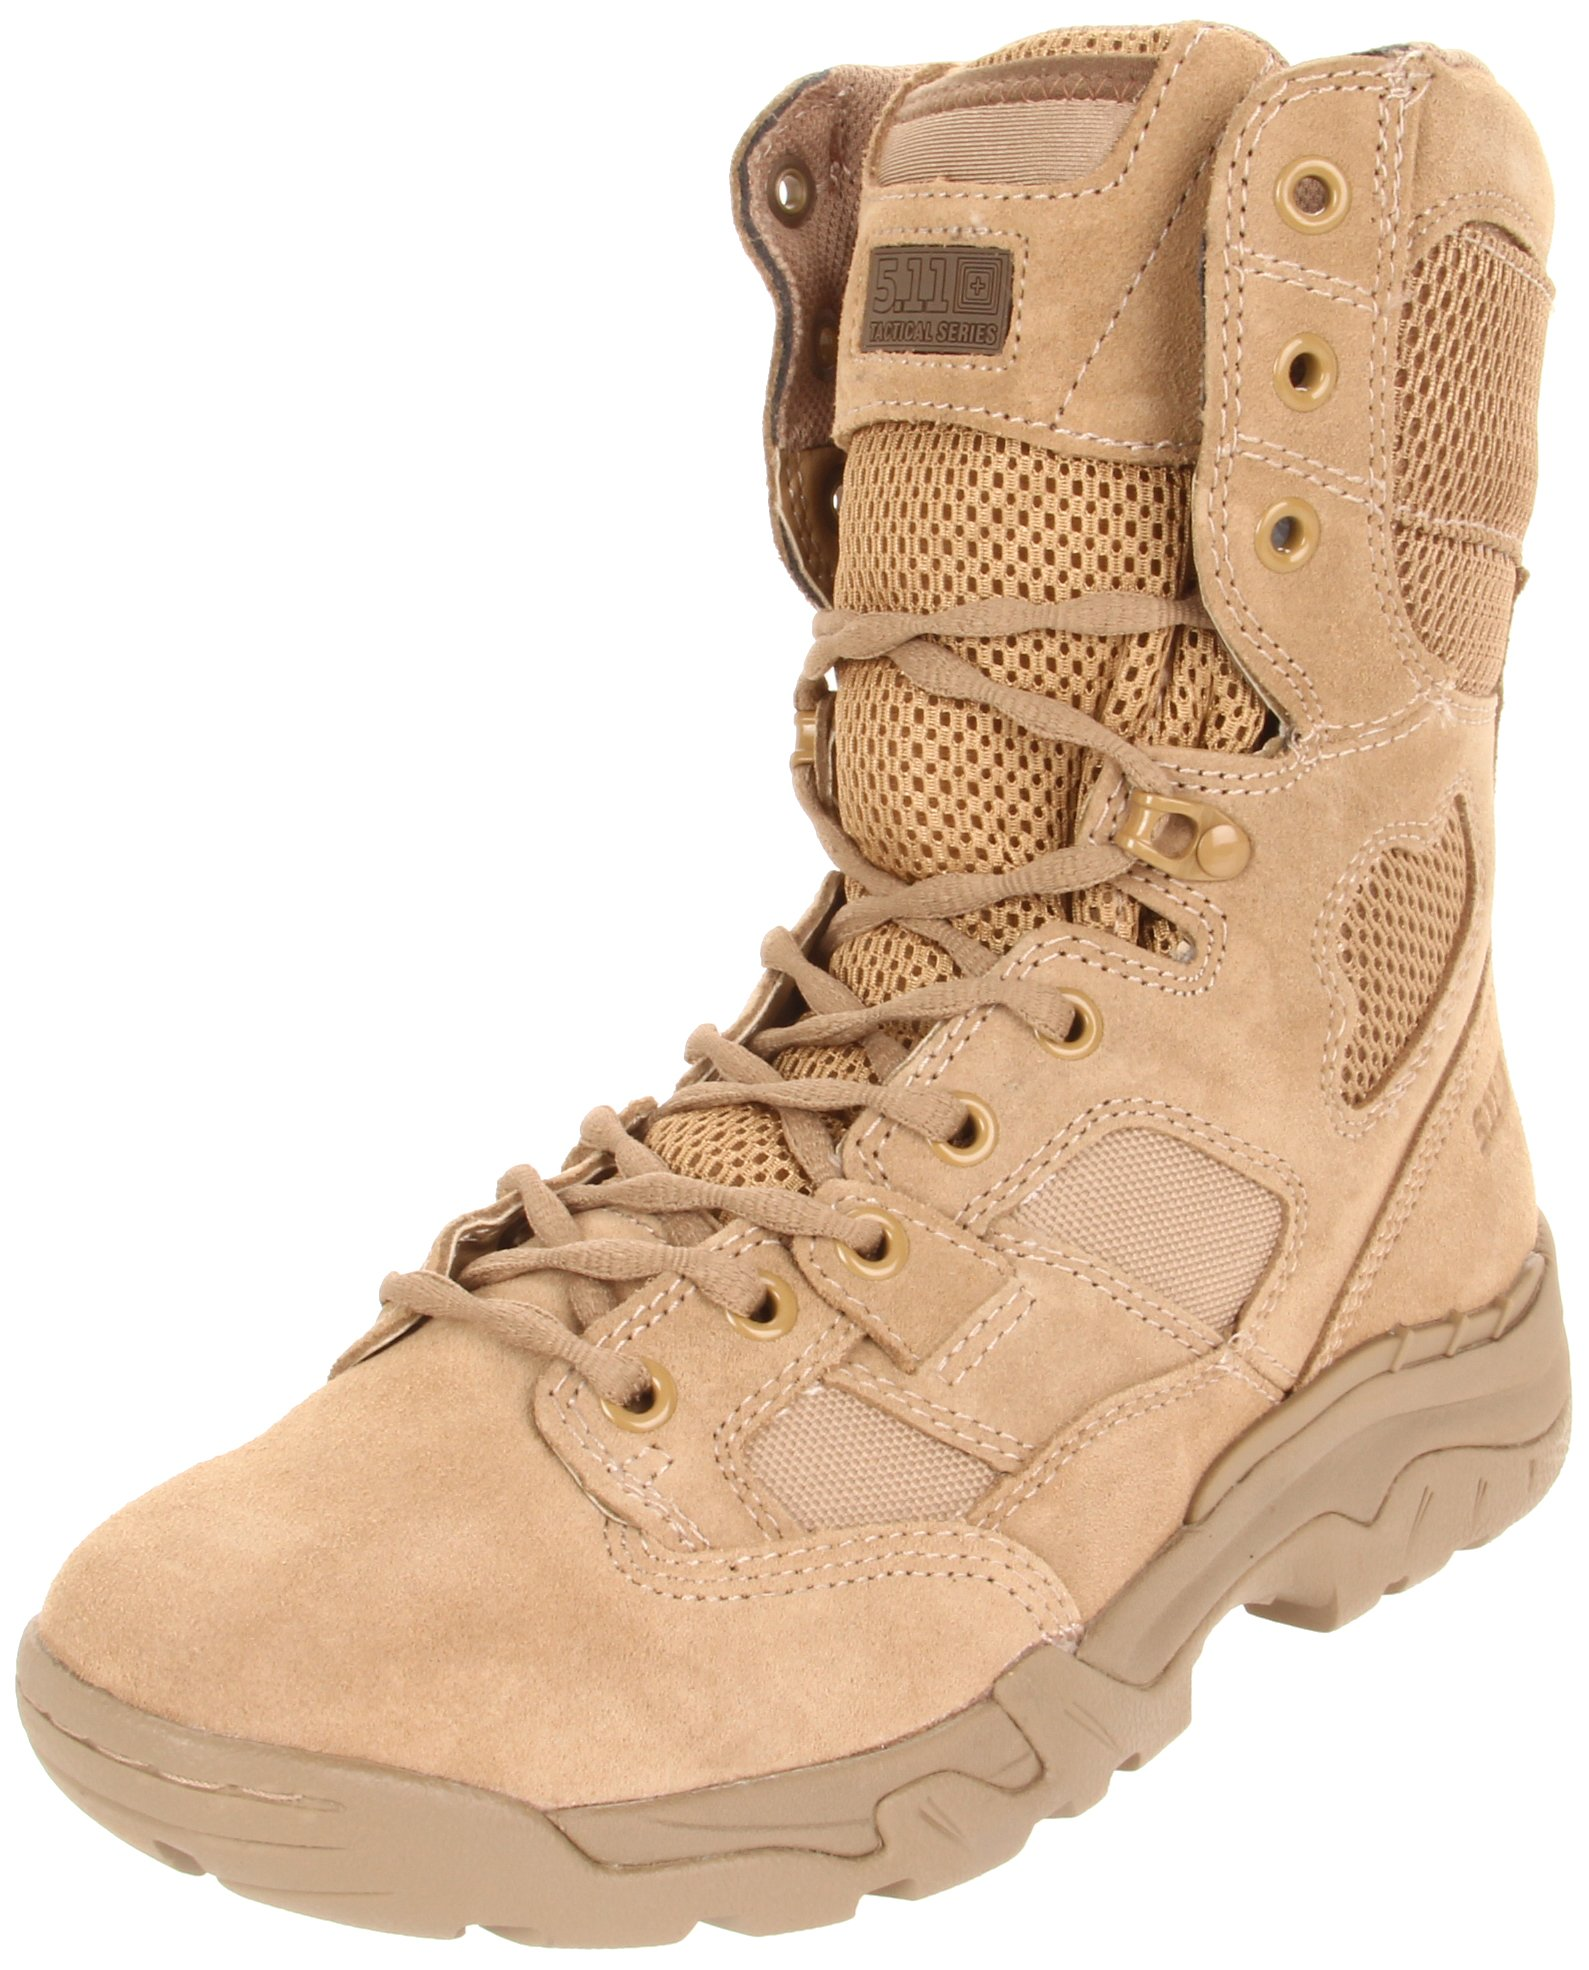 5.11 Taclite 8In Boot-U, Coyote Suede 8.5-R by 5.11